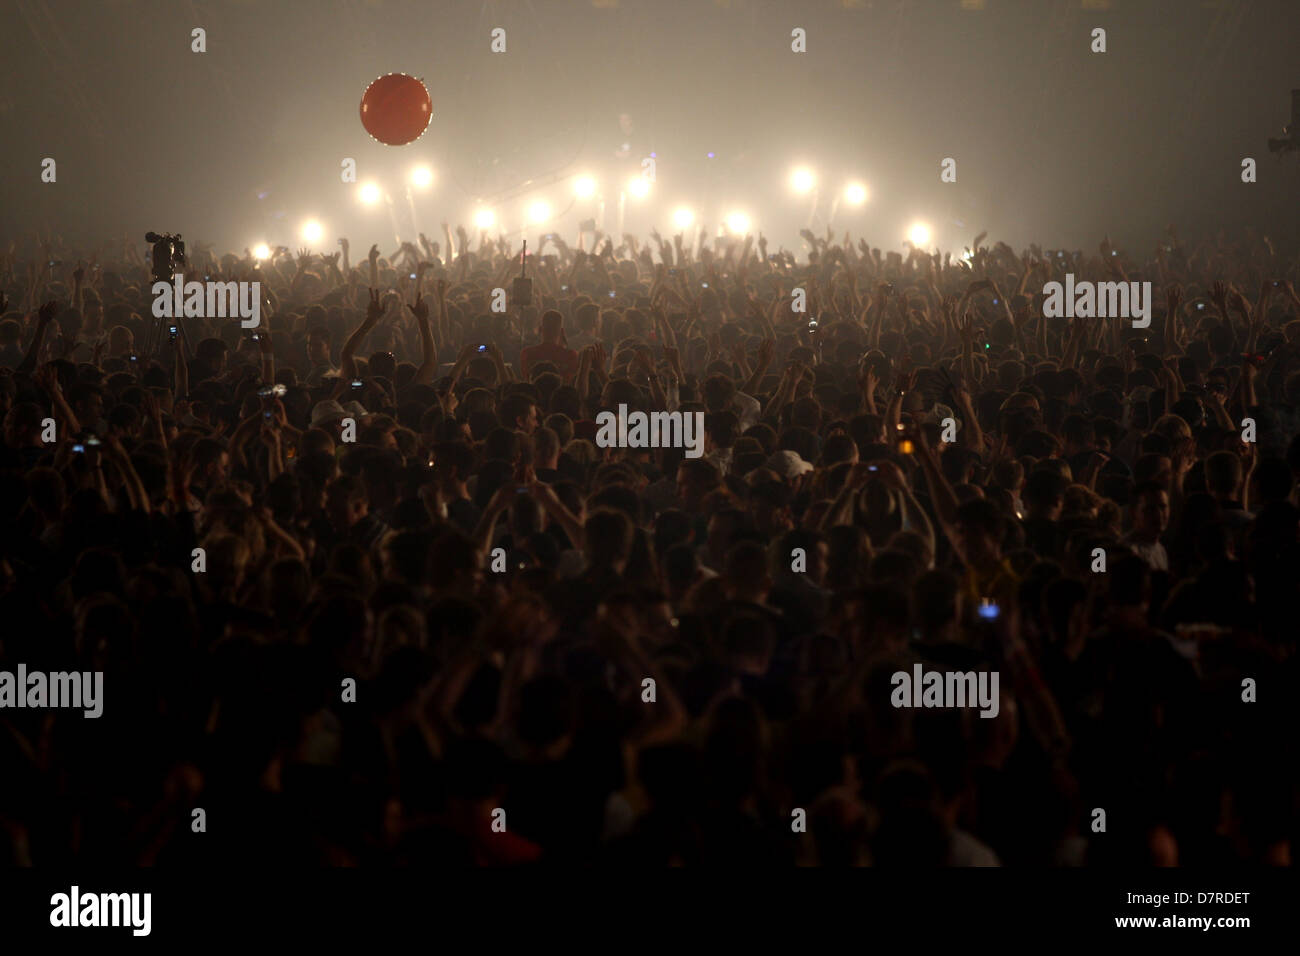 Large crowds of partygoers at Trance Energy EDM event - Stock Image